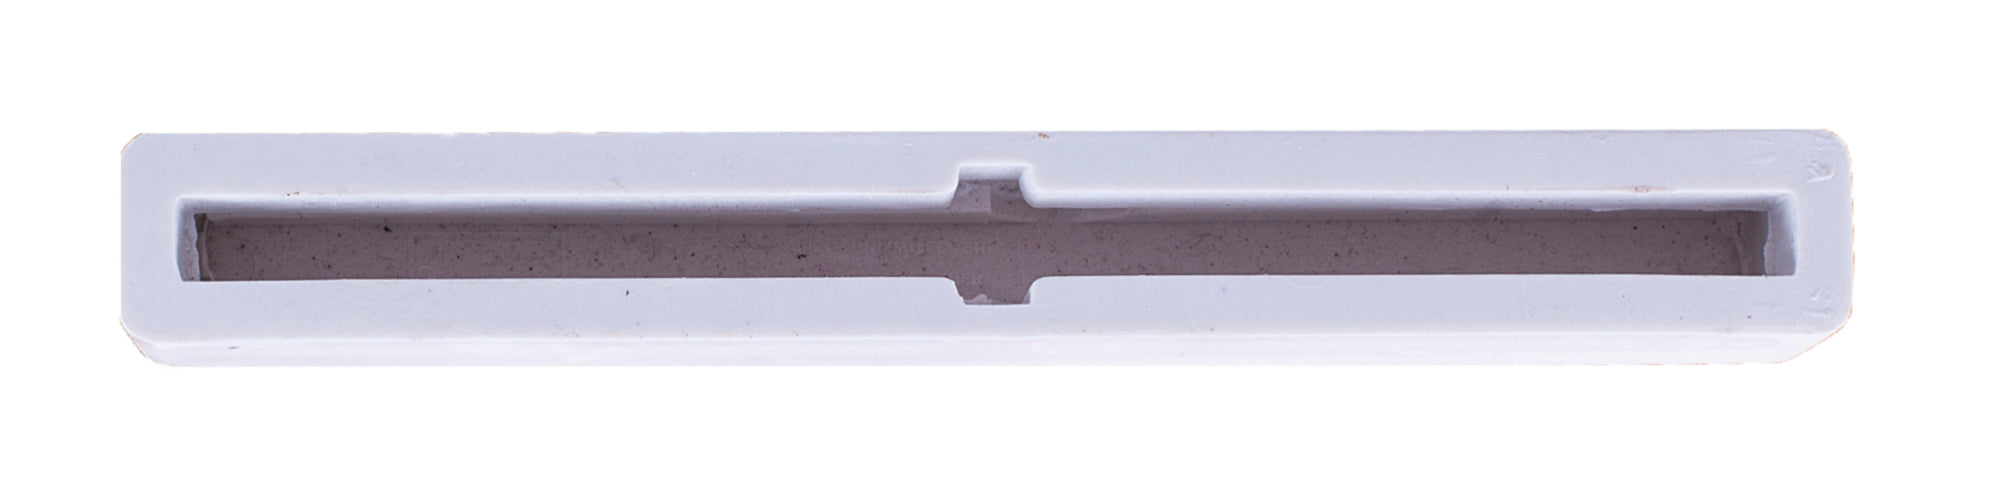 Fin Mount System - Bahne - Single Fin System